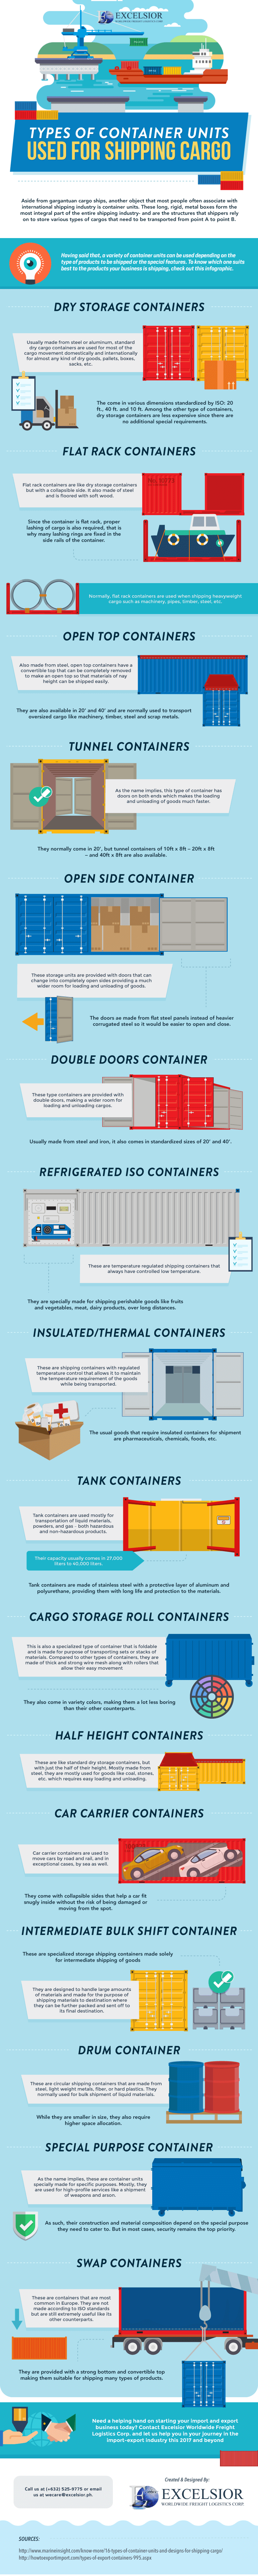 Types-of-Container-Units-Used-for-Shipping-Cargo